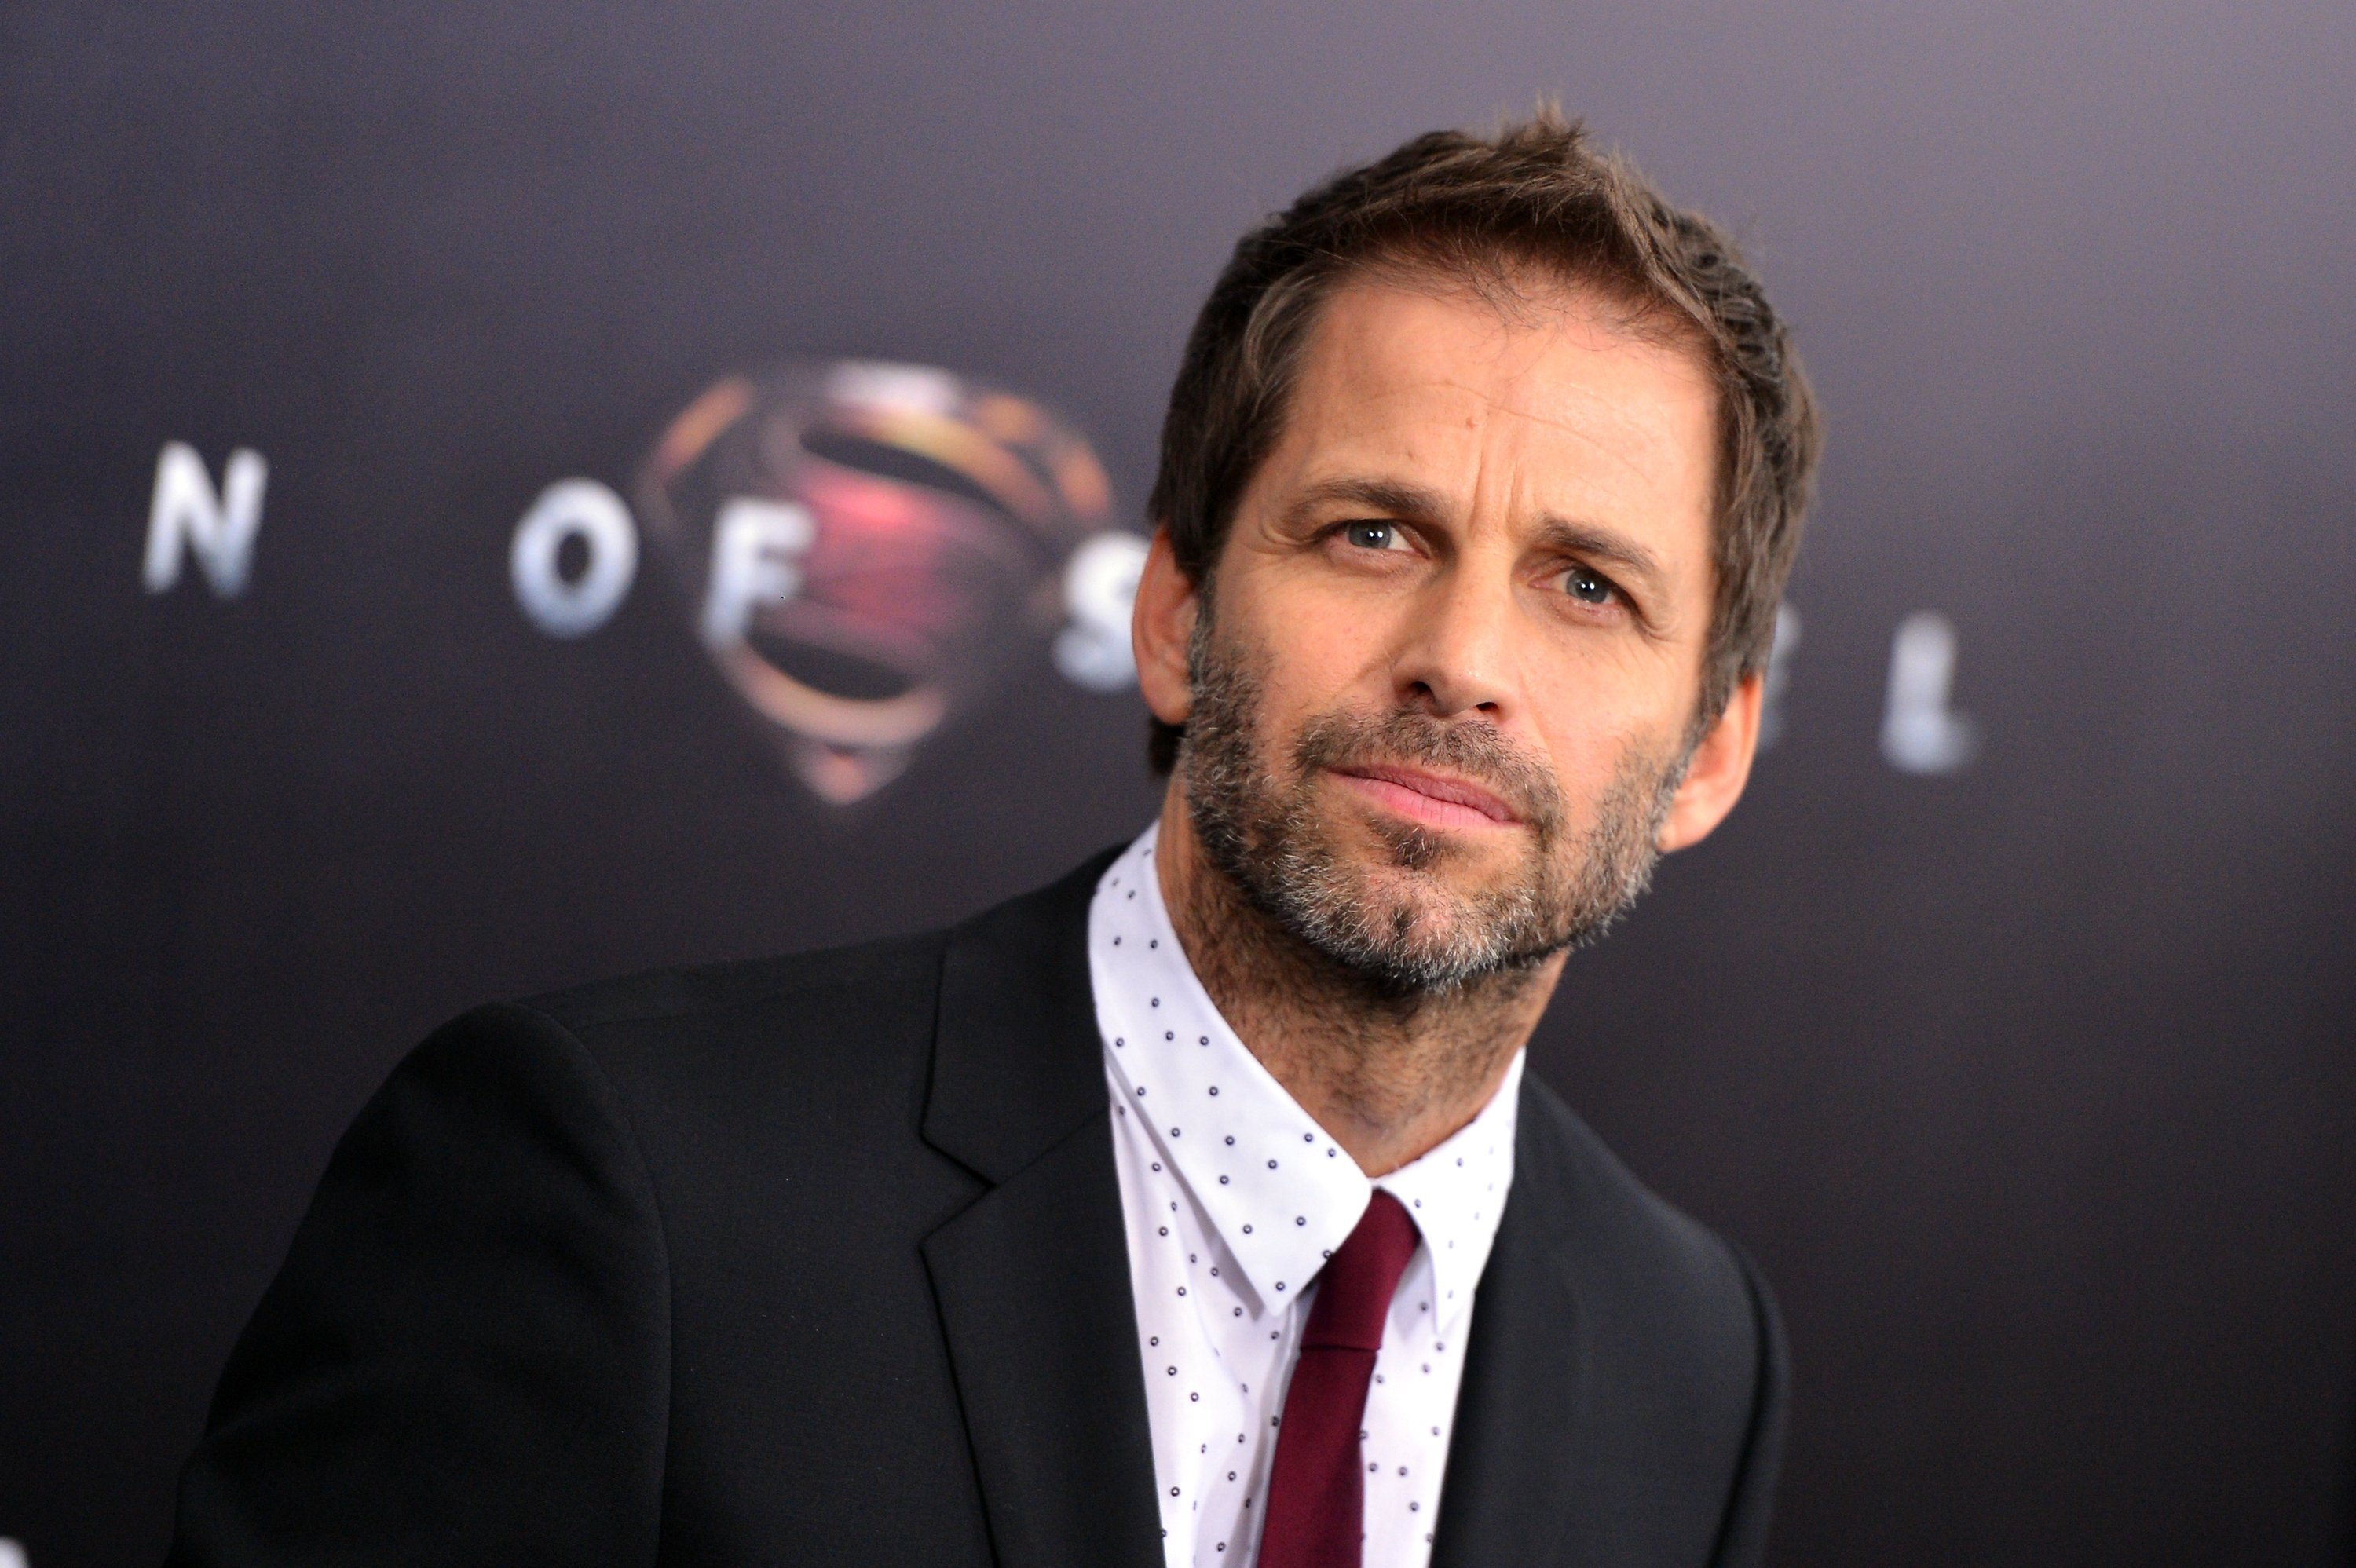 Zack Snyder attends the 'Man Of Steel' world premiere at Alice Tully Hall at Lincoln Center on June 10, 2013 in New York City